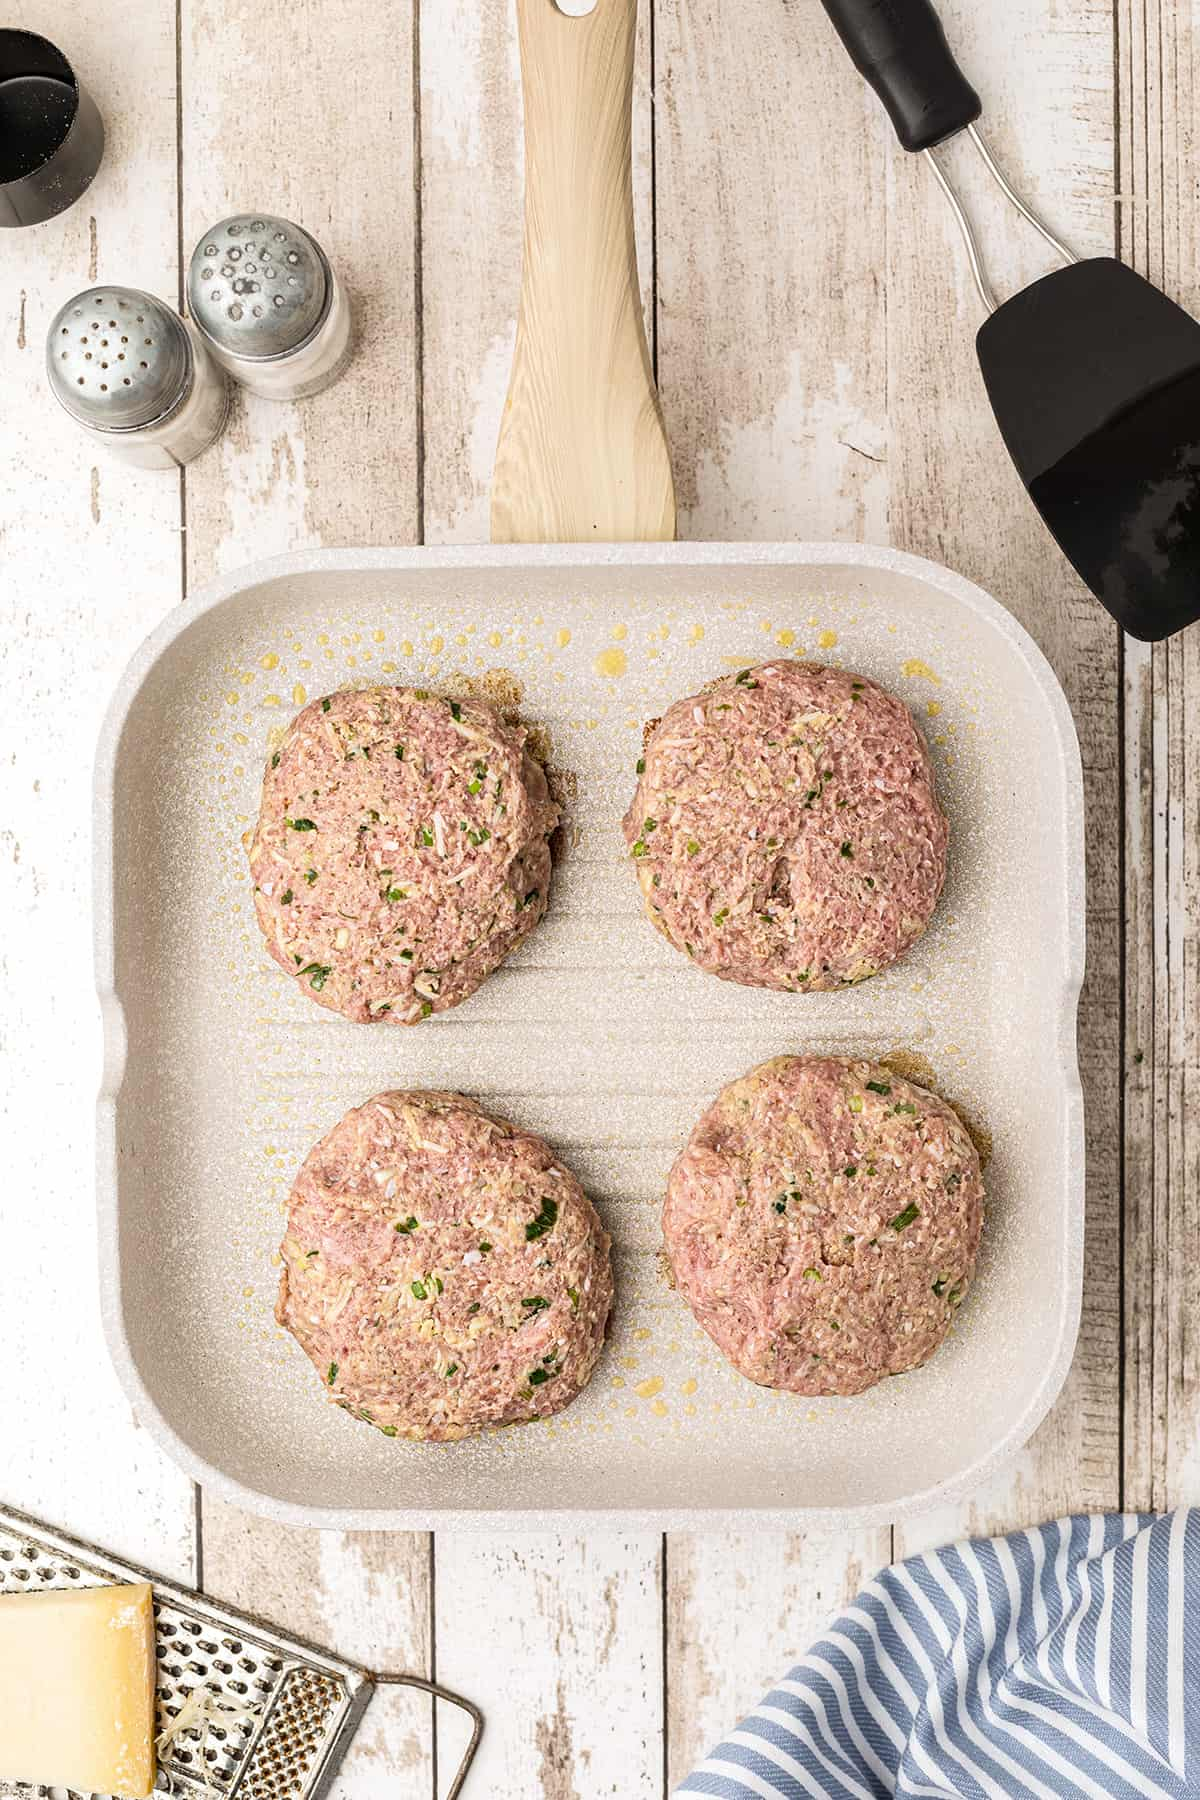 Four burger patties cooking on a grill pan.